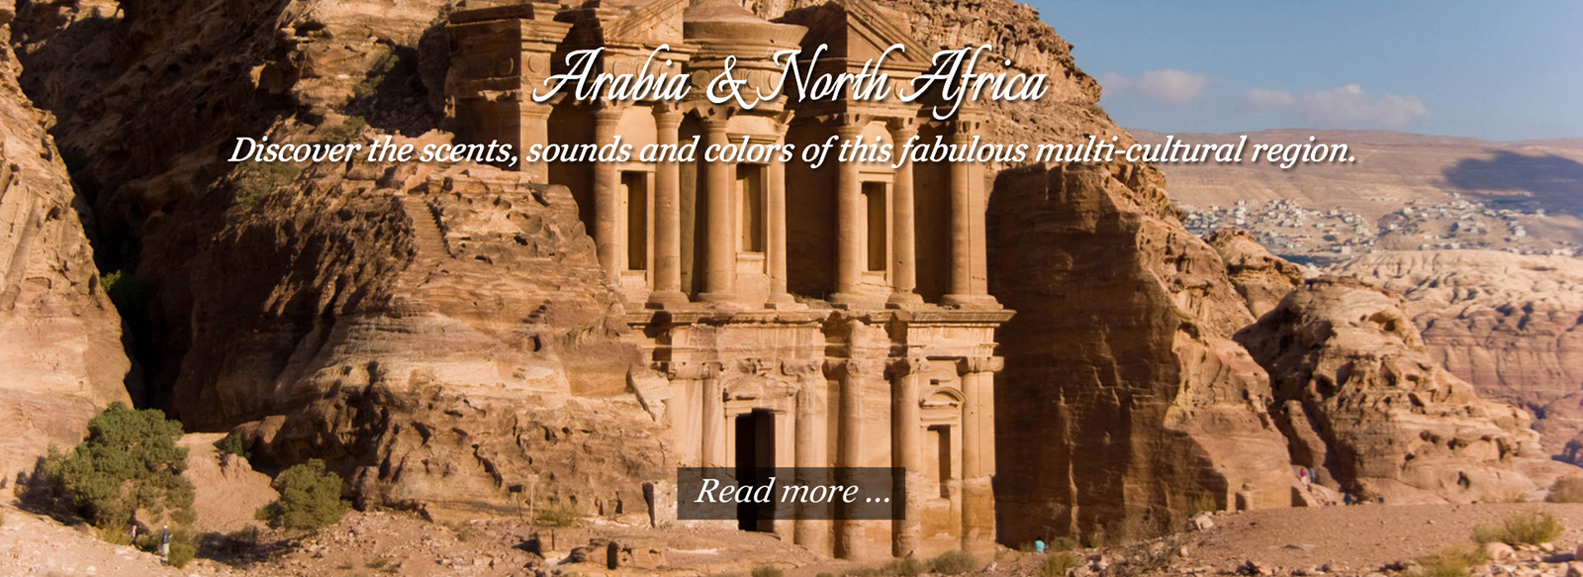 Arabia & North Africa